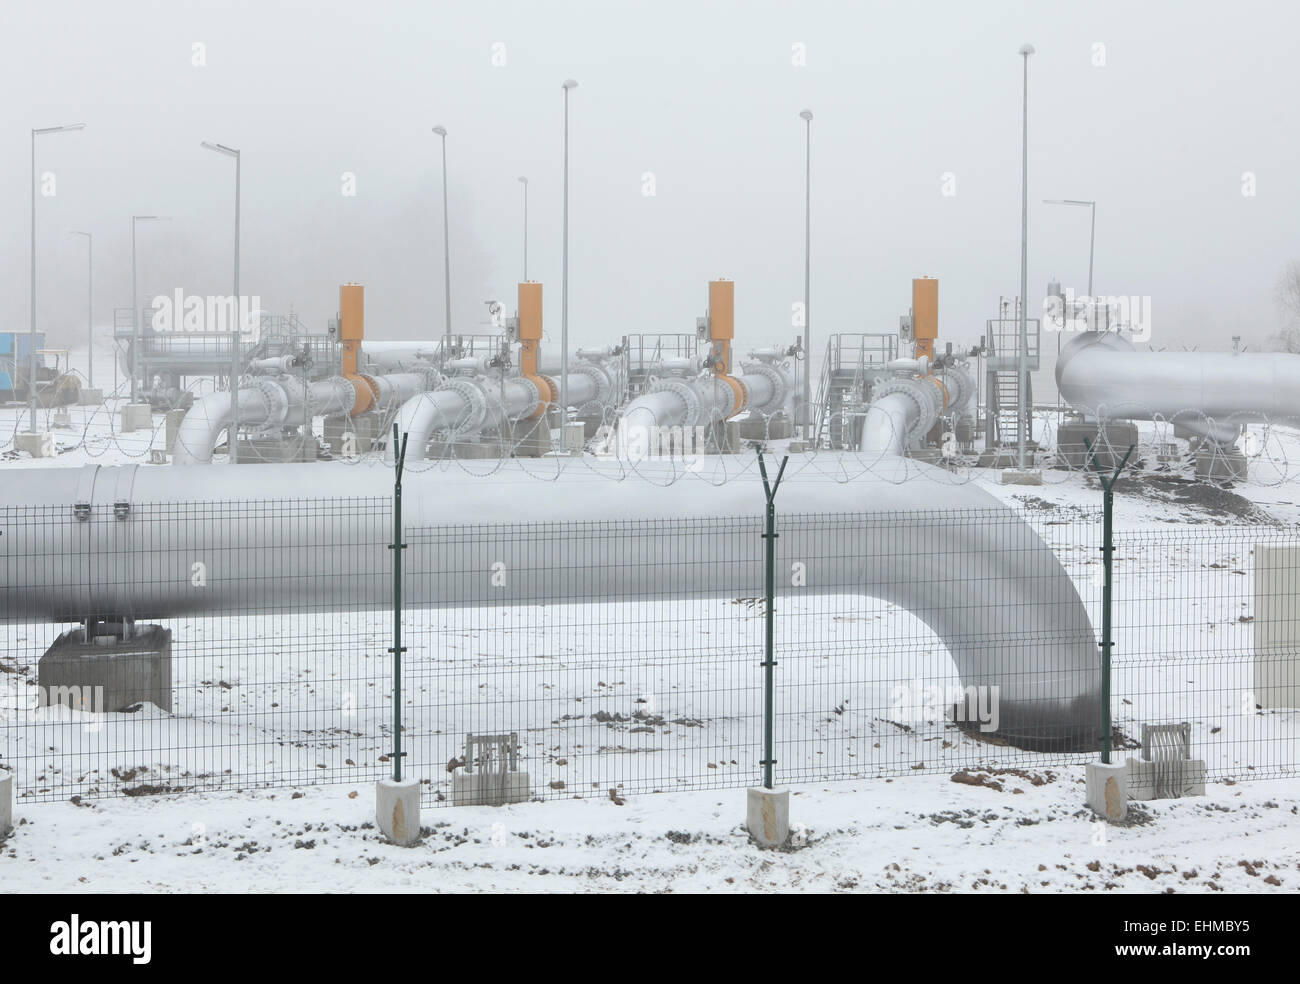 Border delivery station at the Gazela natural gas pipeline near Rozvadov, Czech Republic. - Stock Image